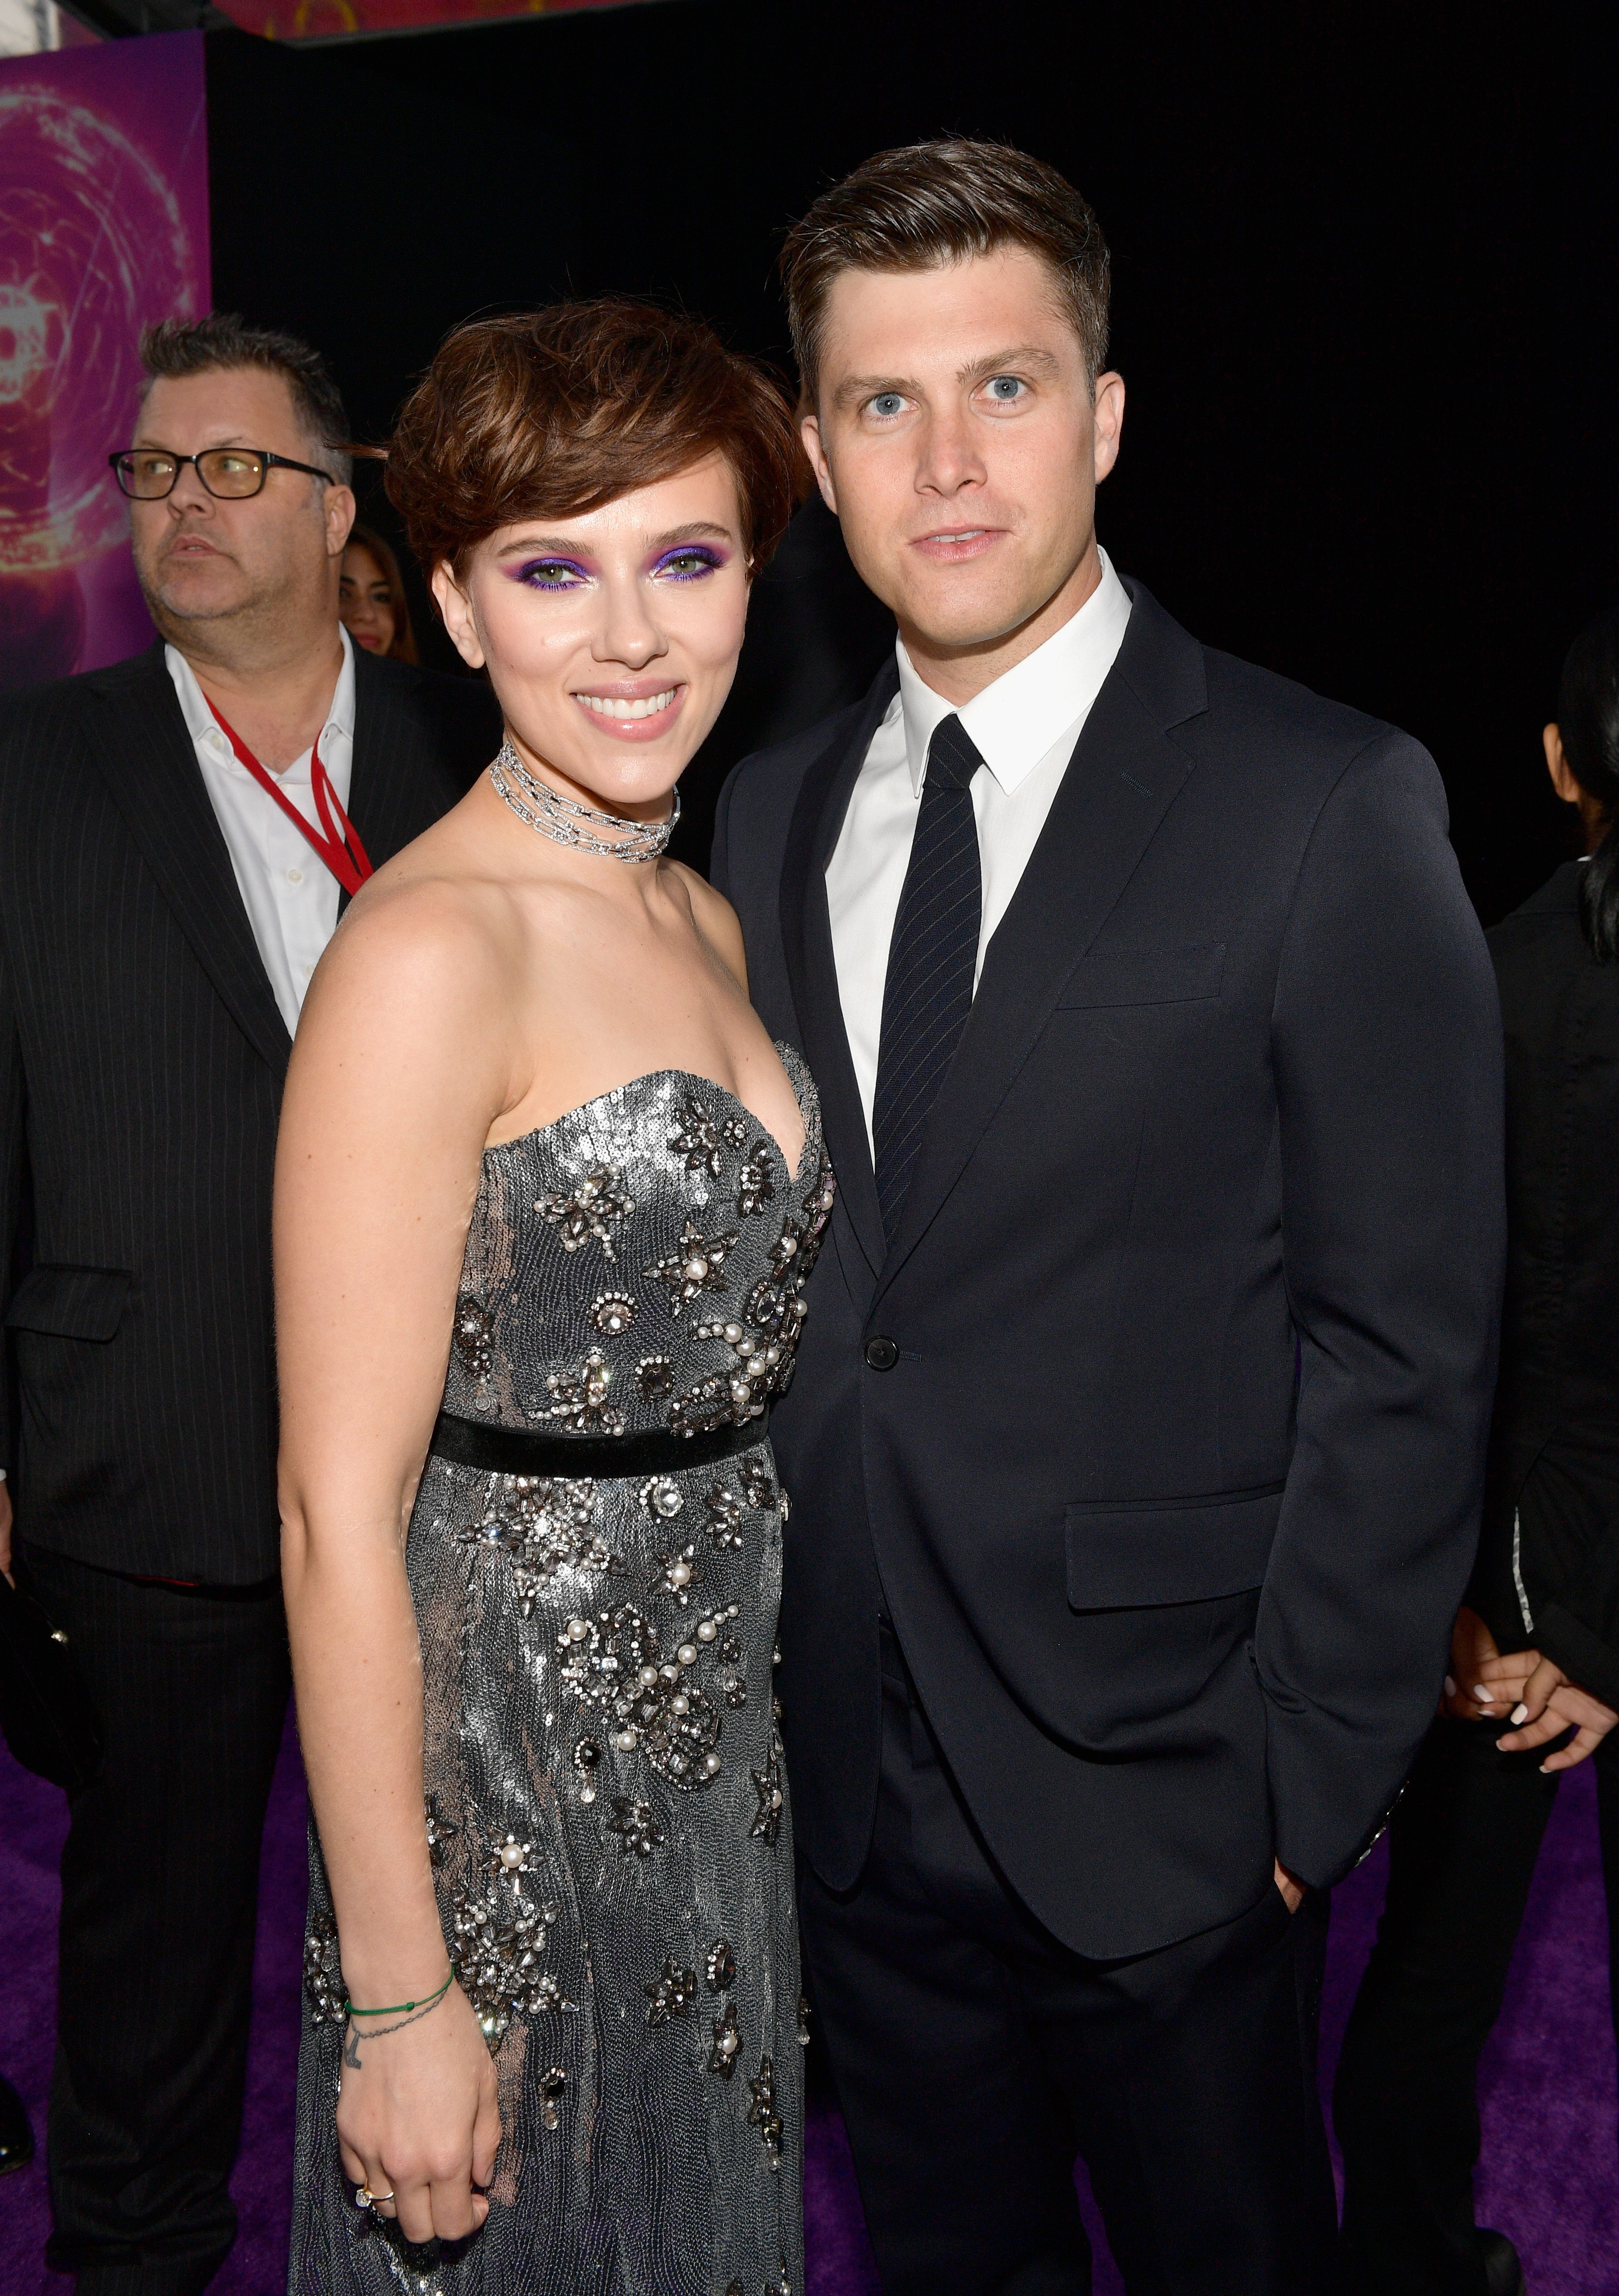 Scarlett Johansson and her boyfriend Colin Jost shared a sweet moment of PDA on SNL recommend